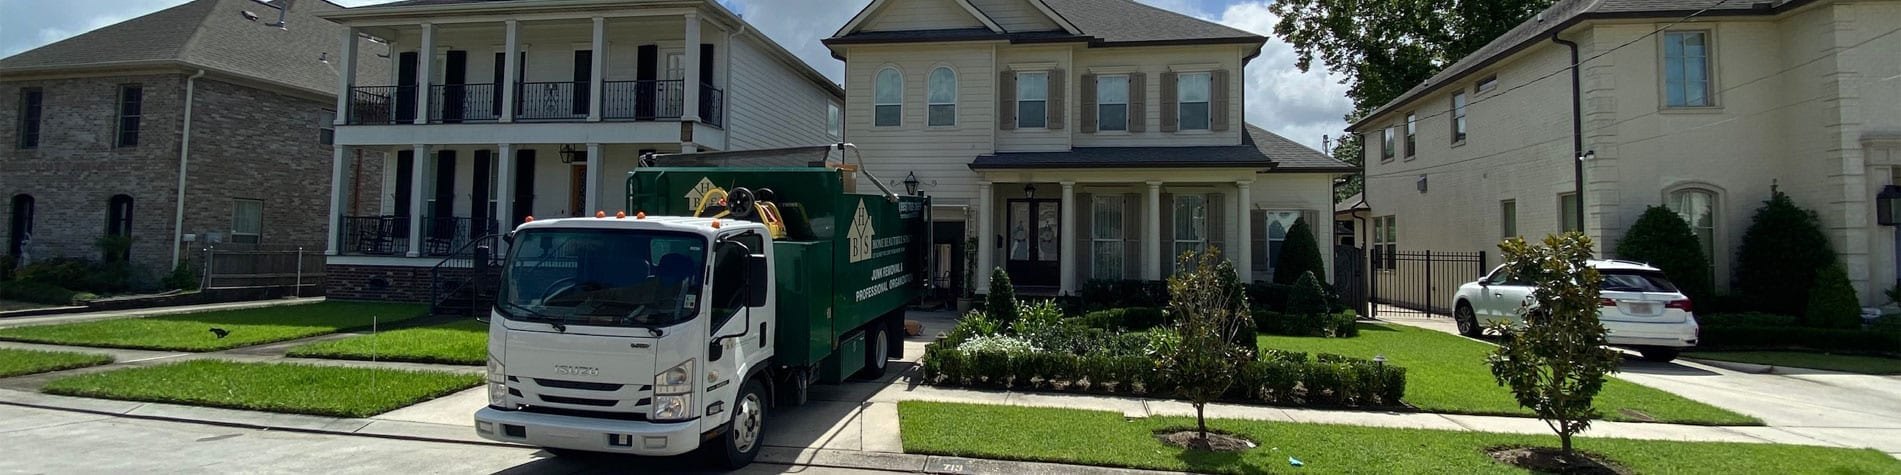 Junk Removal New Orleans Neighborhood Home Beautiful Solutions